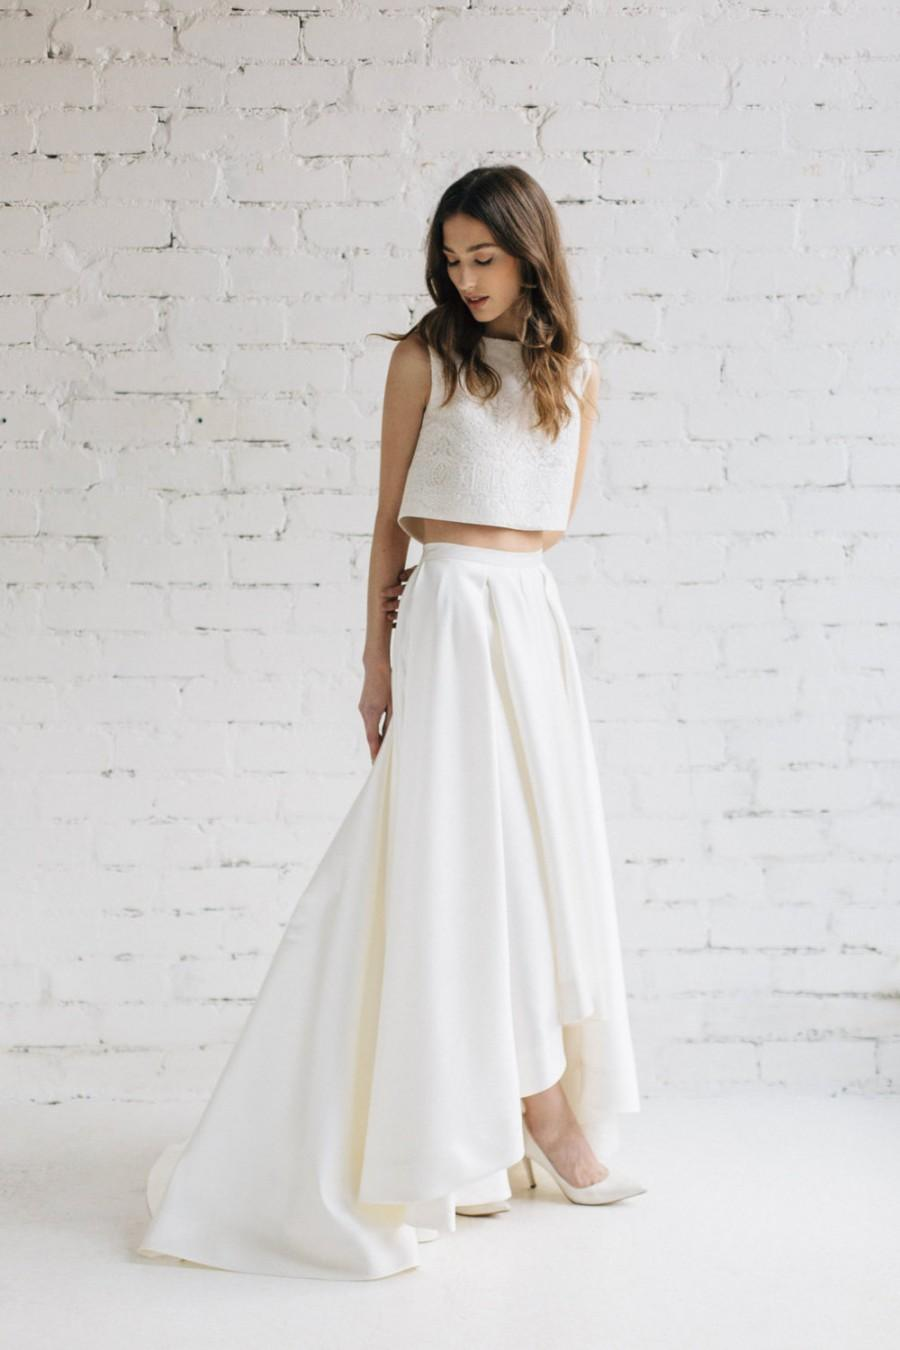 Wedding Dress Skirt And Top Of Two Piece Wedding Dress Bridal Separates Crop Top Dress